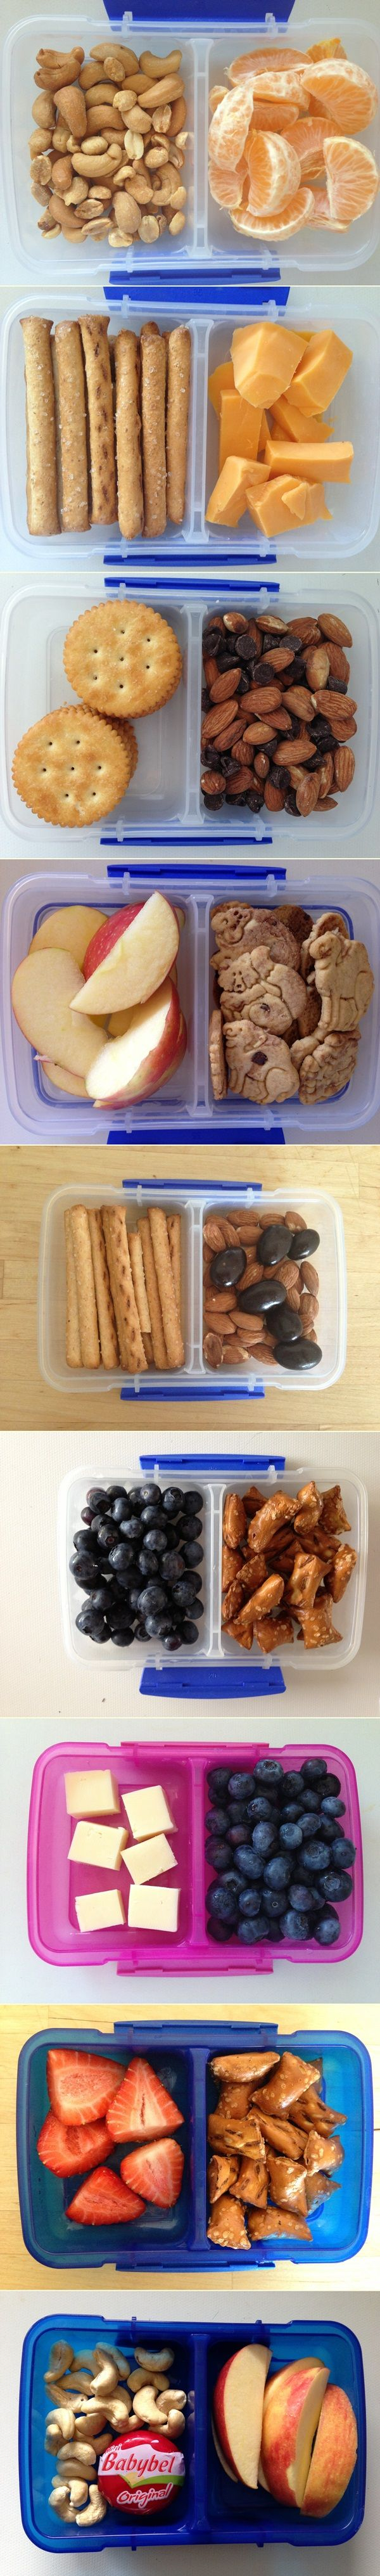 Grab and go snack ideas! (For D2 at preschool. Finally a list of snack ideas that aren't cutesy food art in a bento box!!)